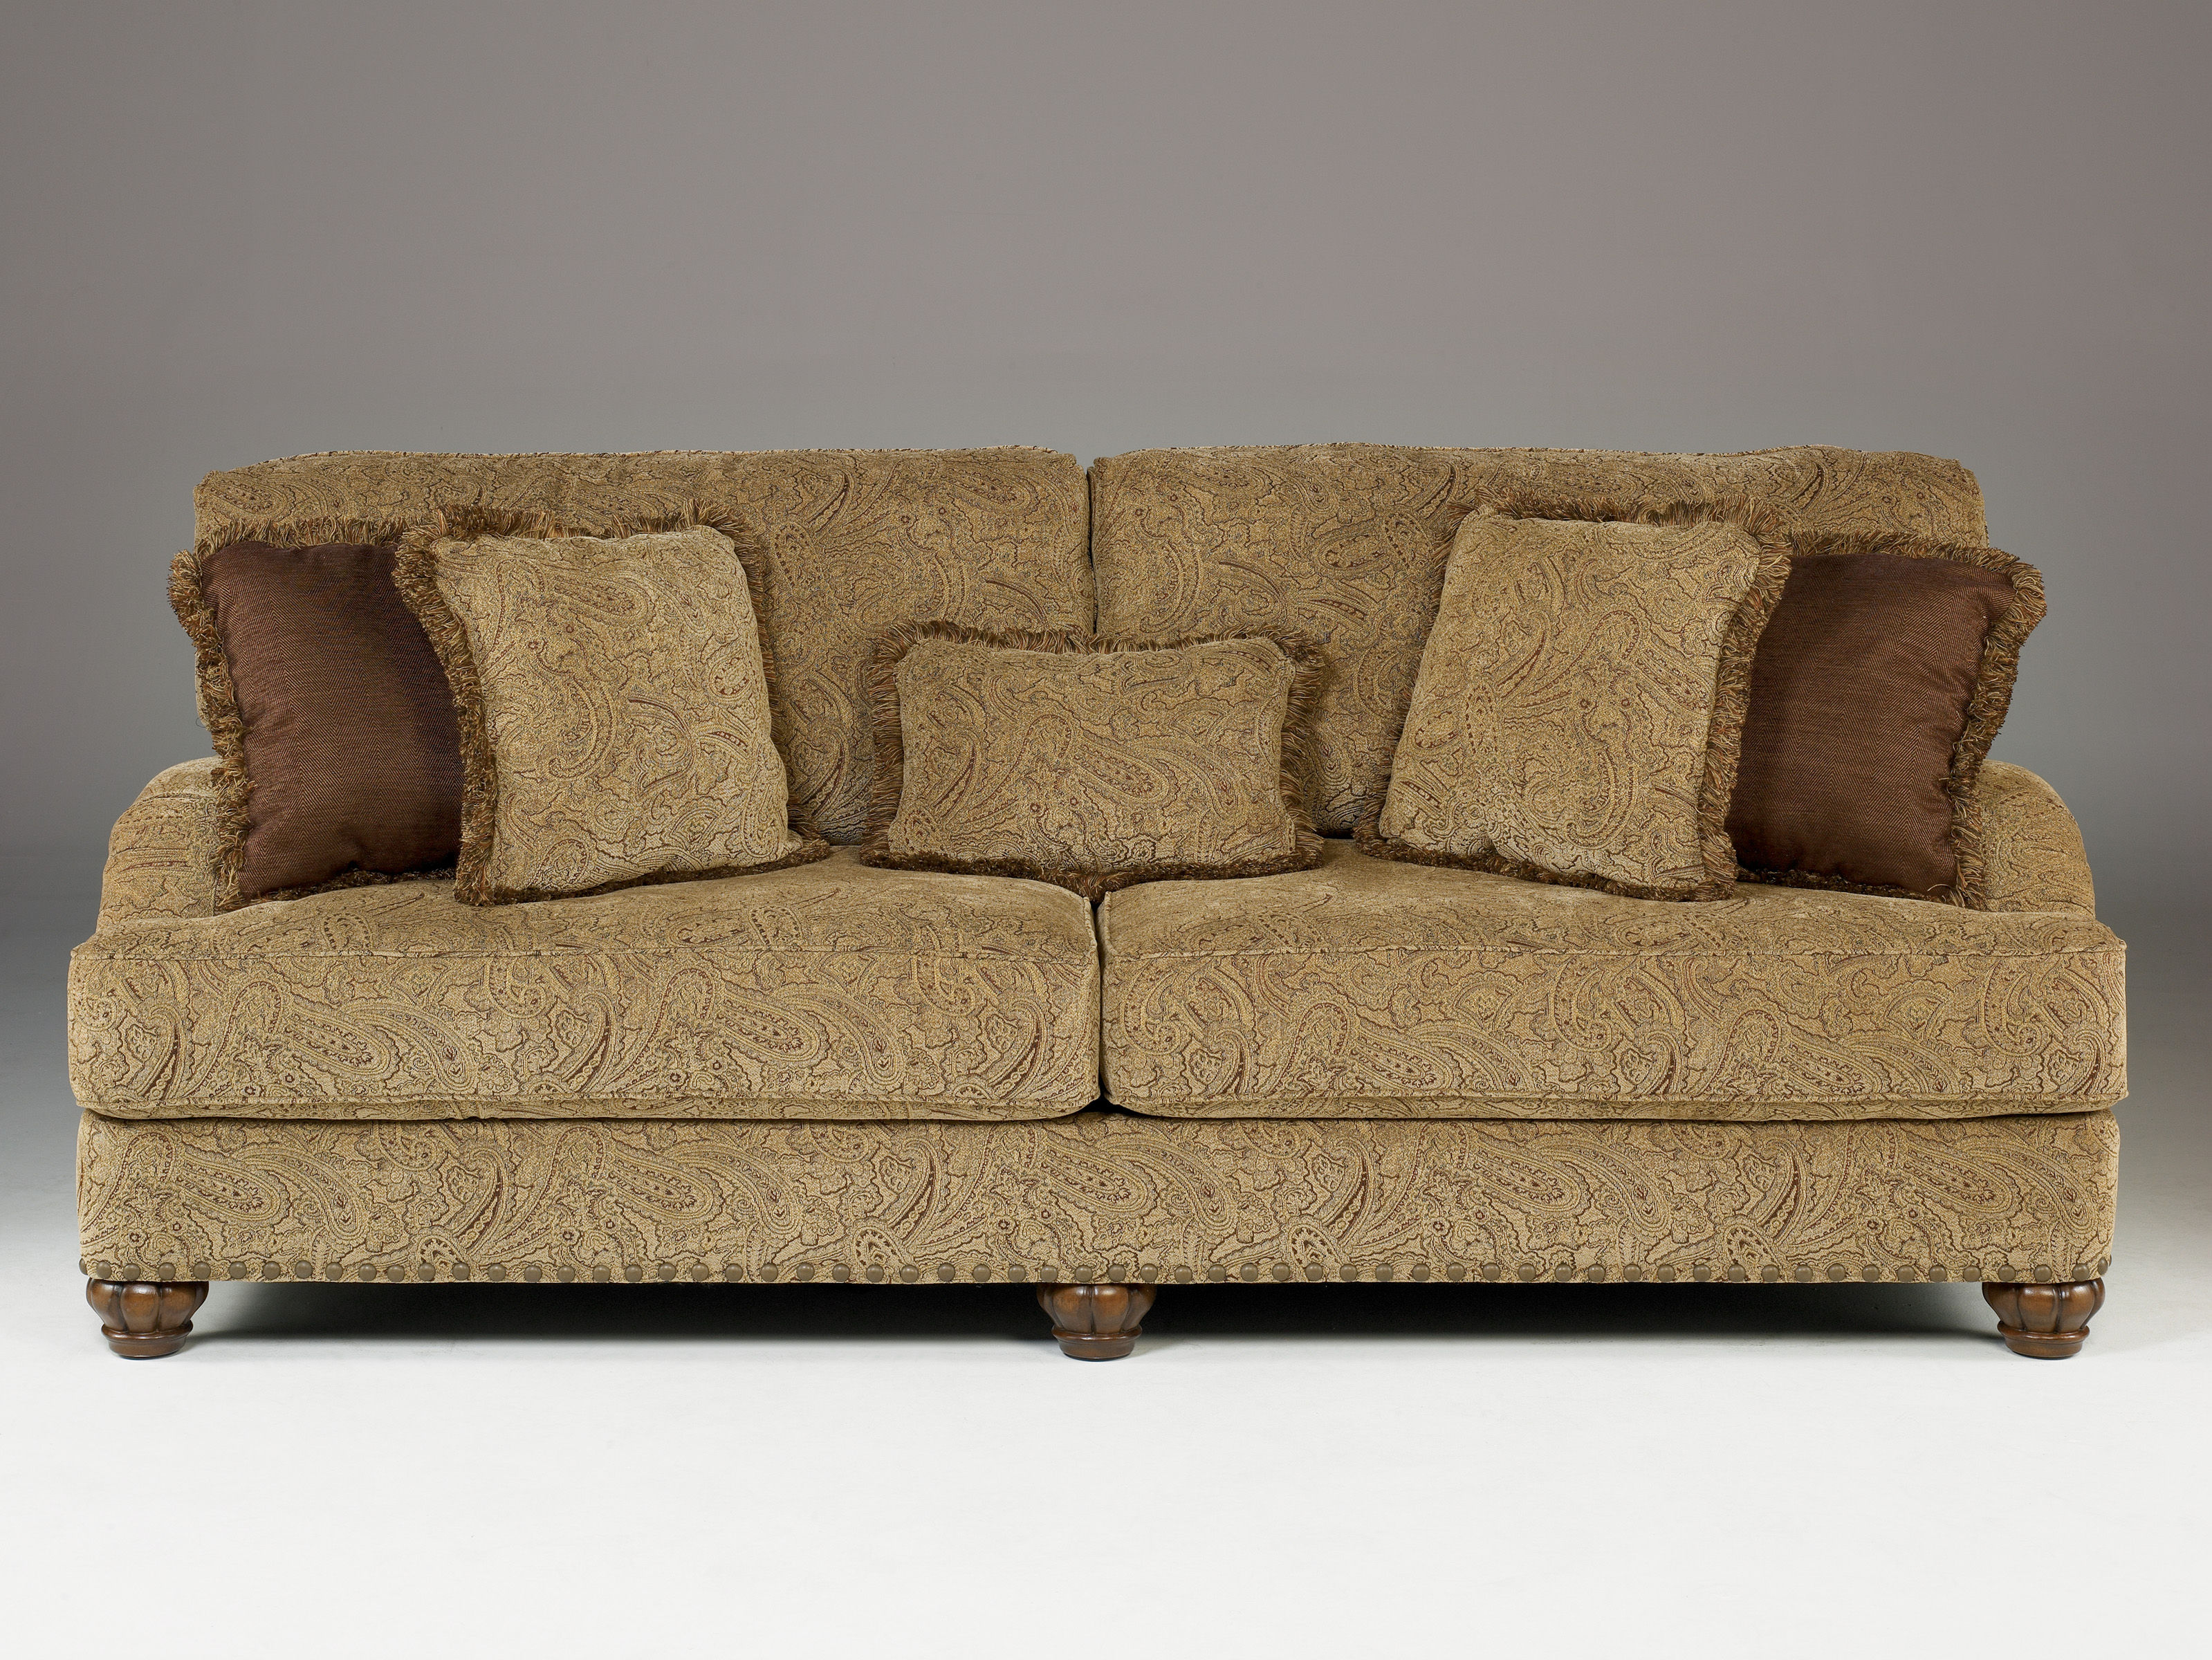 46a5c9d5f016 Stansberry - Vintage Sofa Click To Enlarge ...